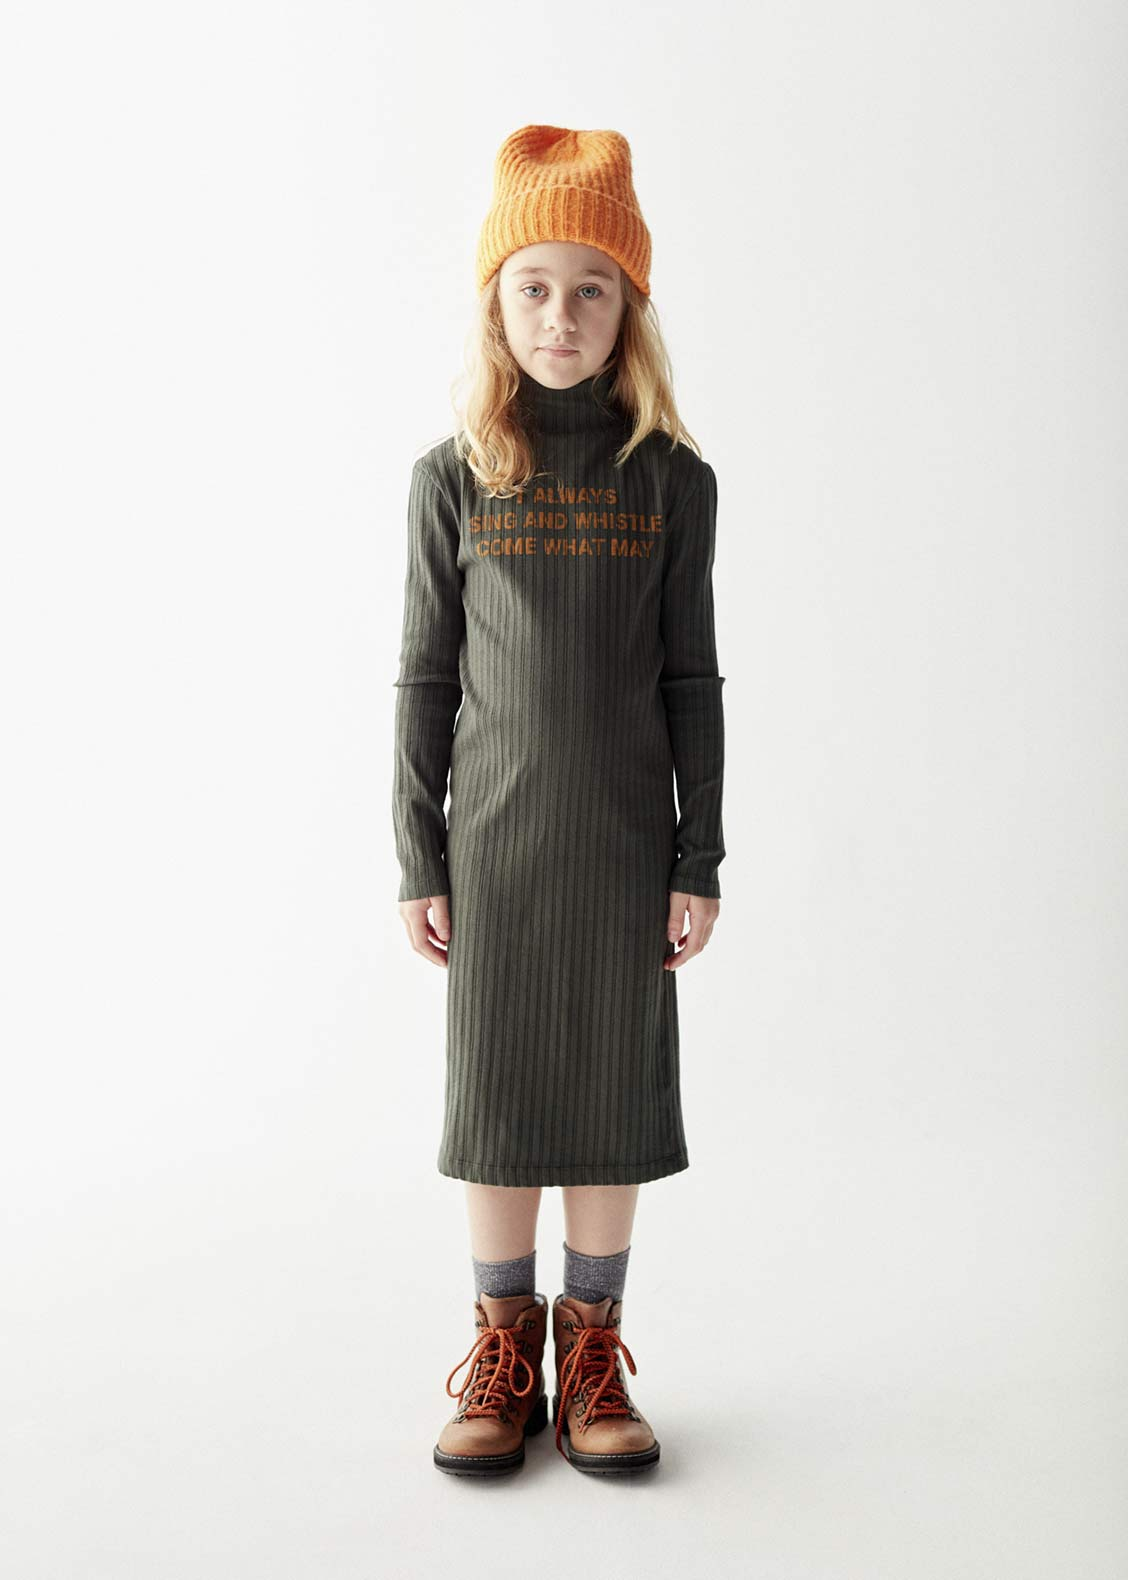 Sing-and-whistle-dress-kid